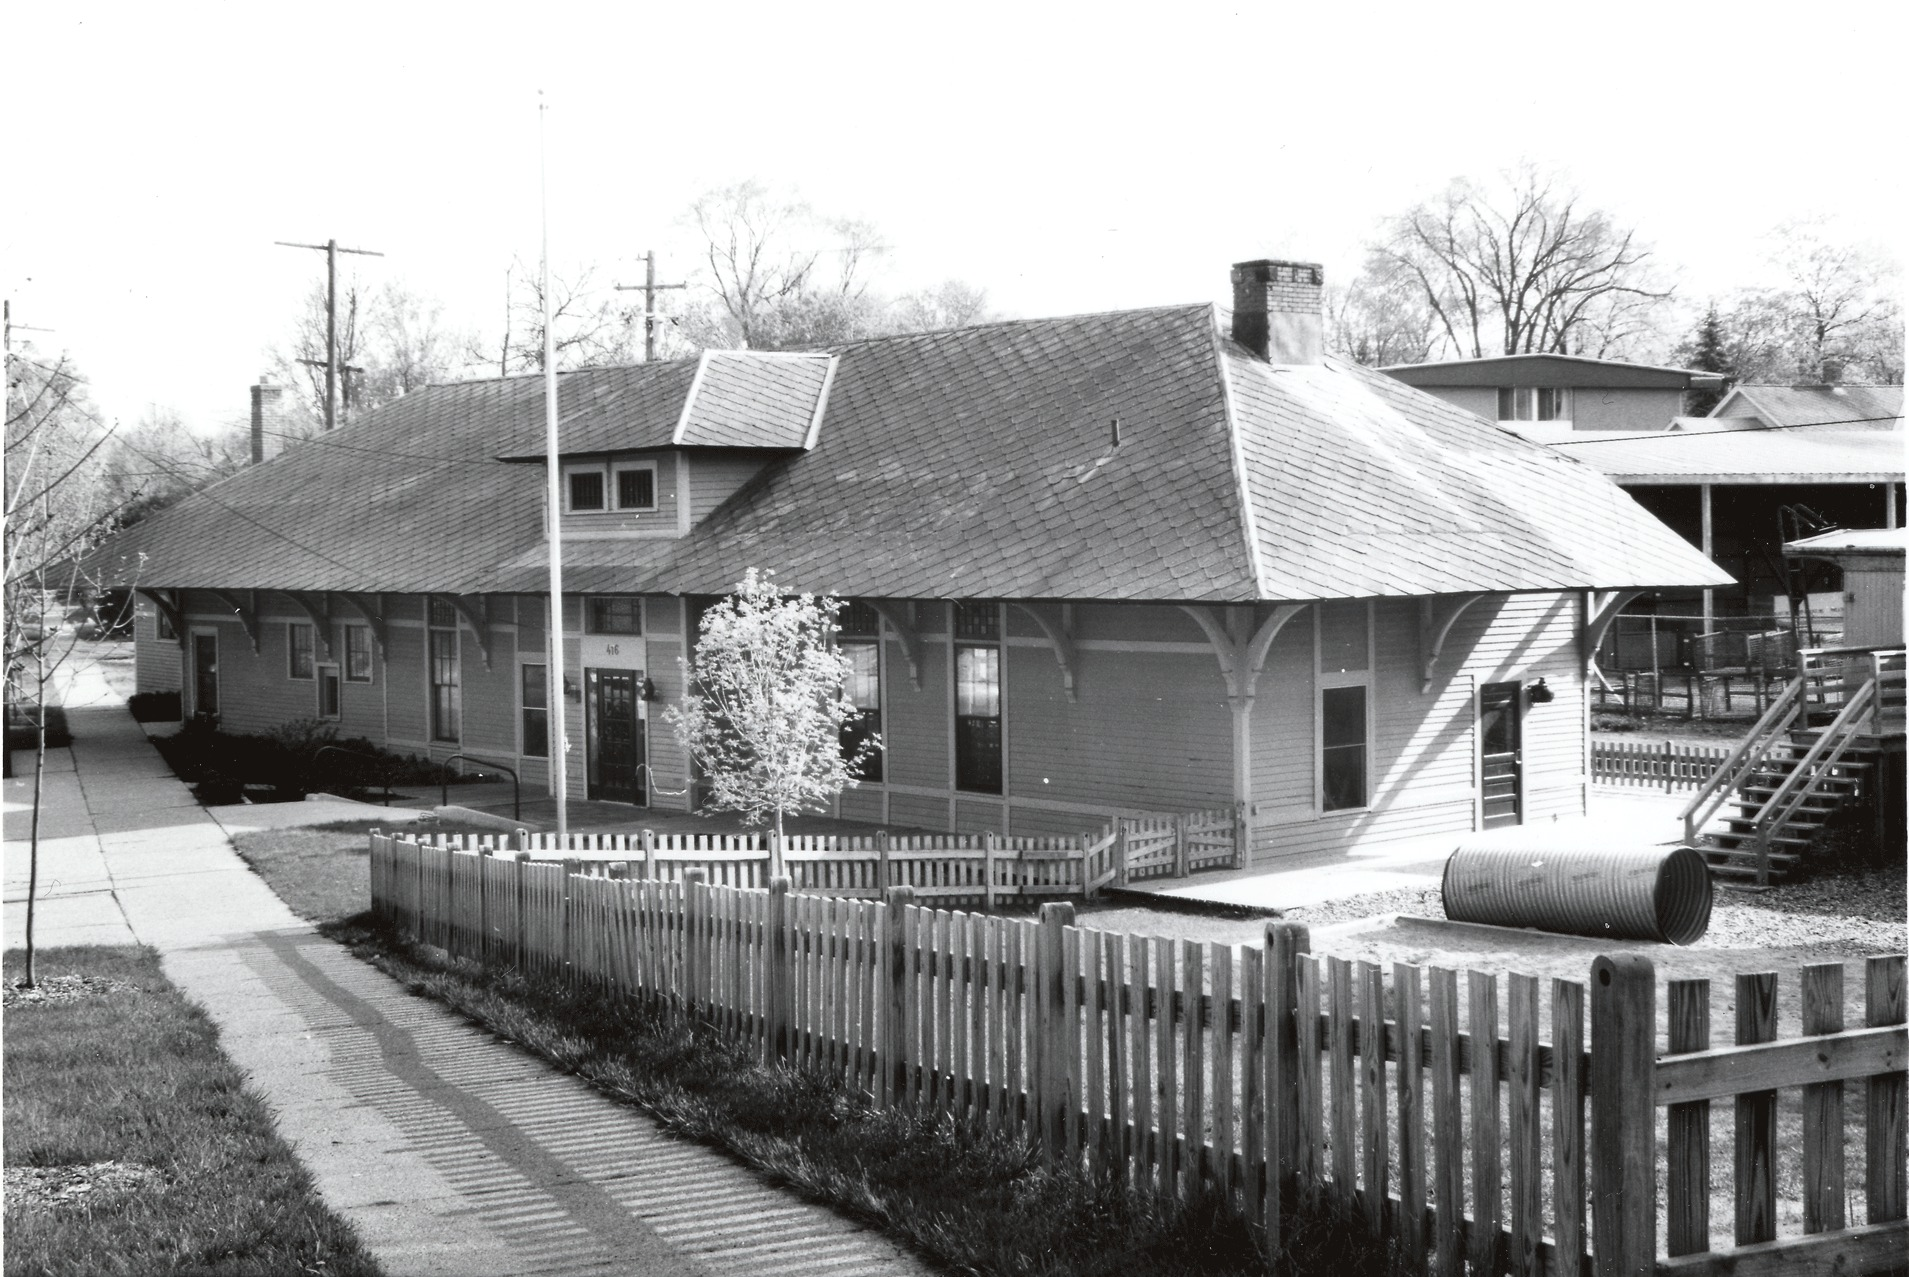 Toledo, Ann Arbor and Northern Michigan Railway Depot, 1889 image